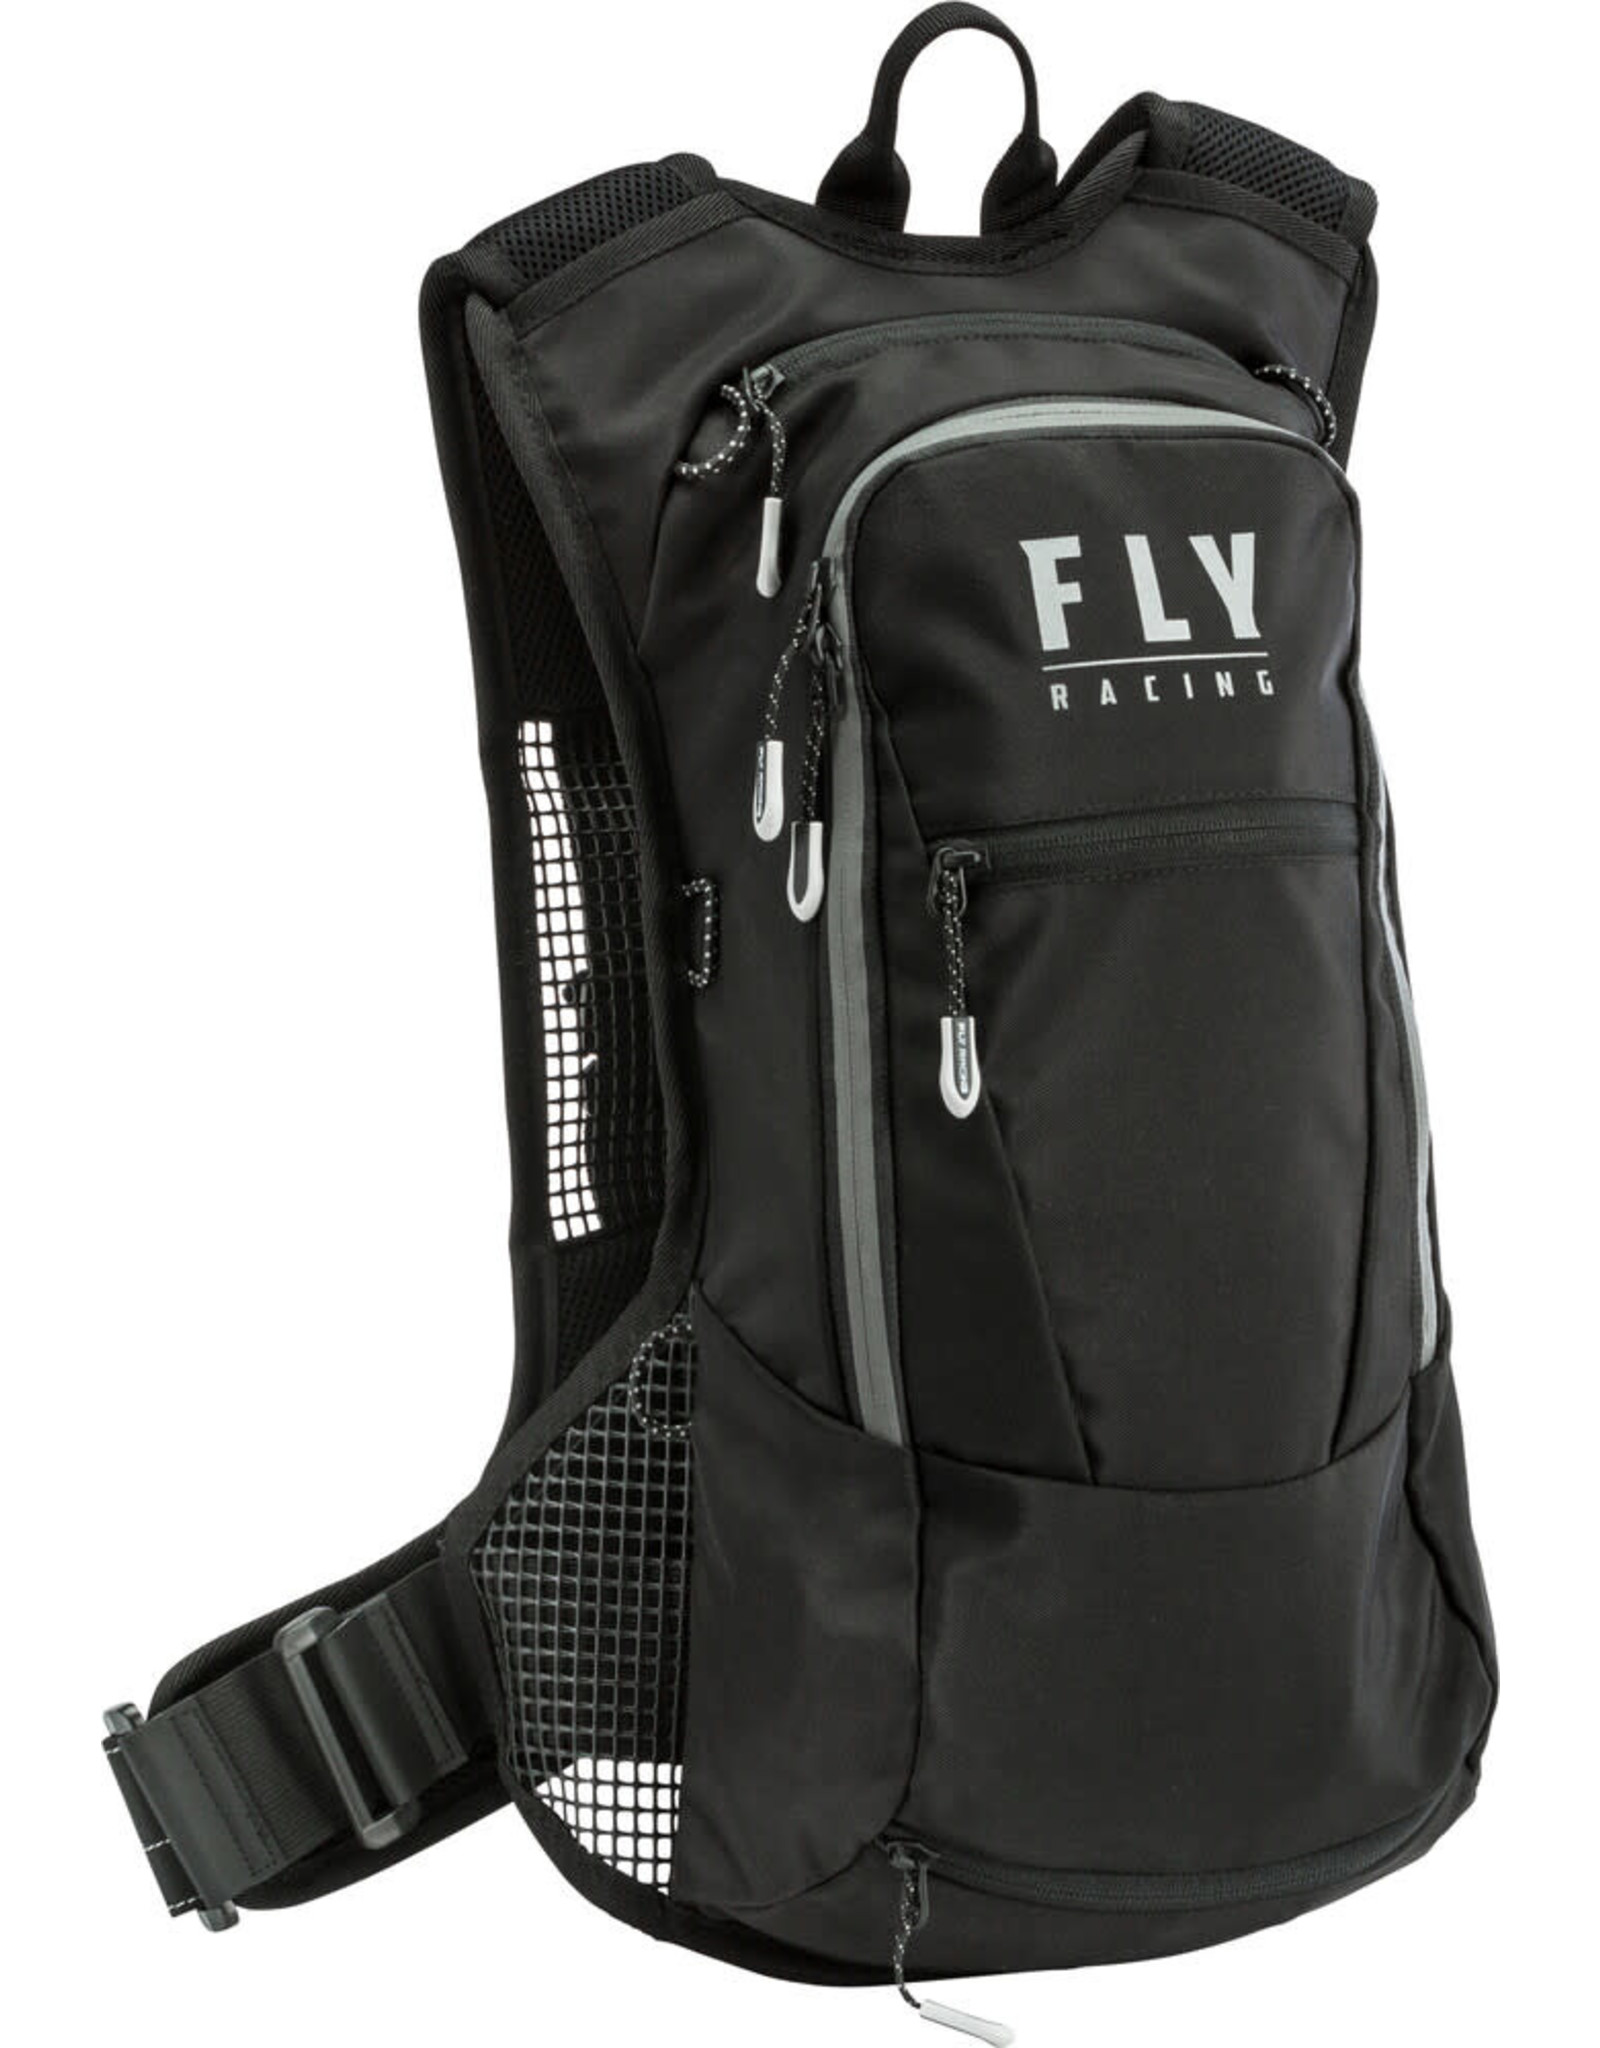 FLY RACING Fly Racing XC 70 HYDRO PACK 2L BLACK